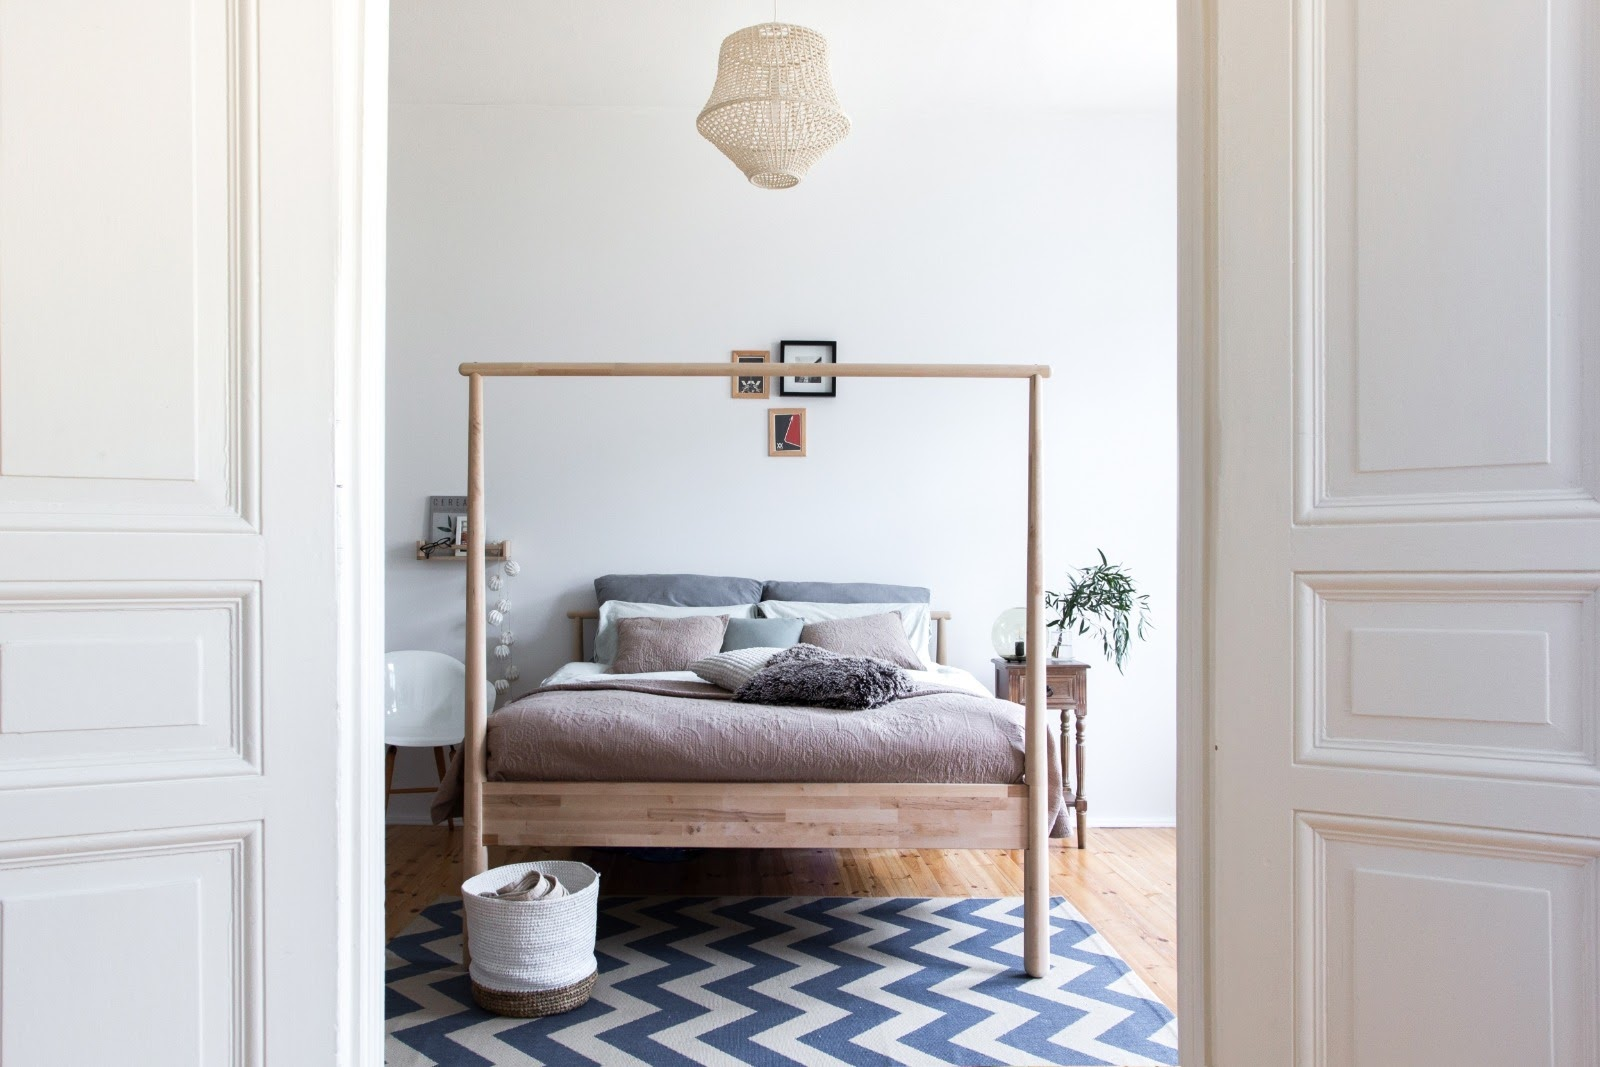 Bedroom of a bright scandinavian flat available for film productions in Berlin Germany